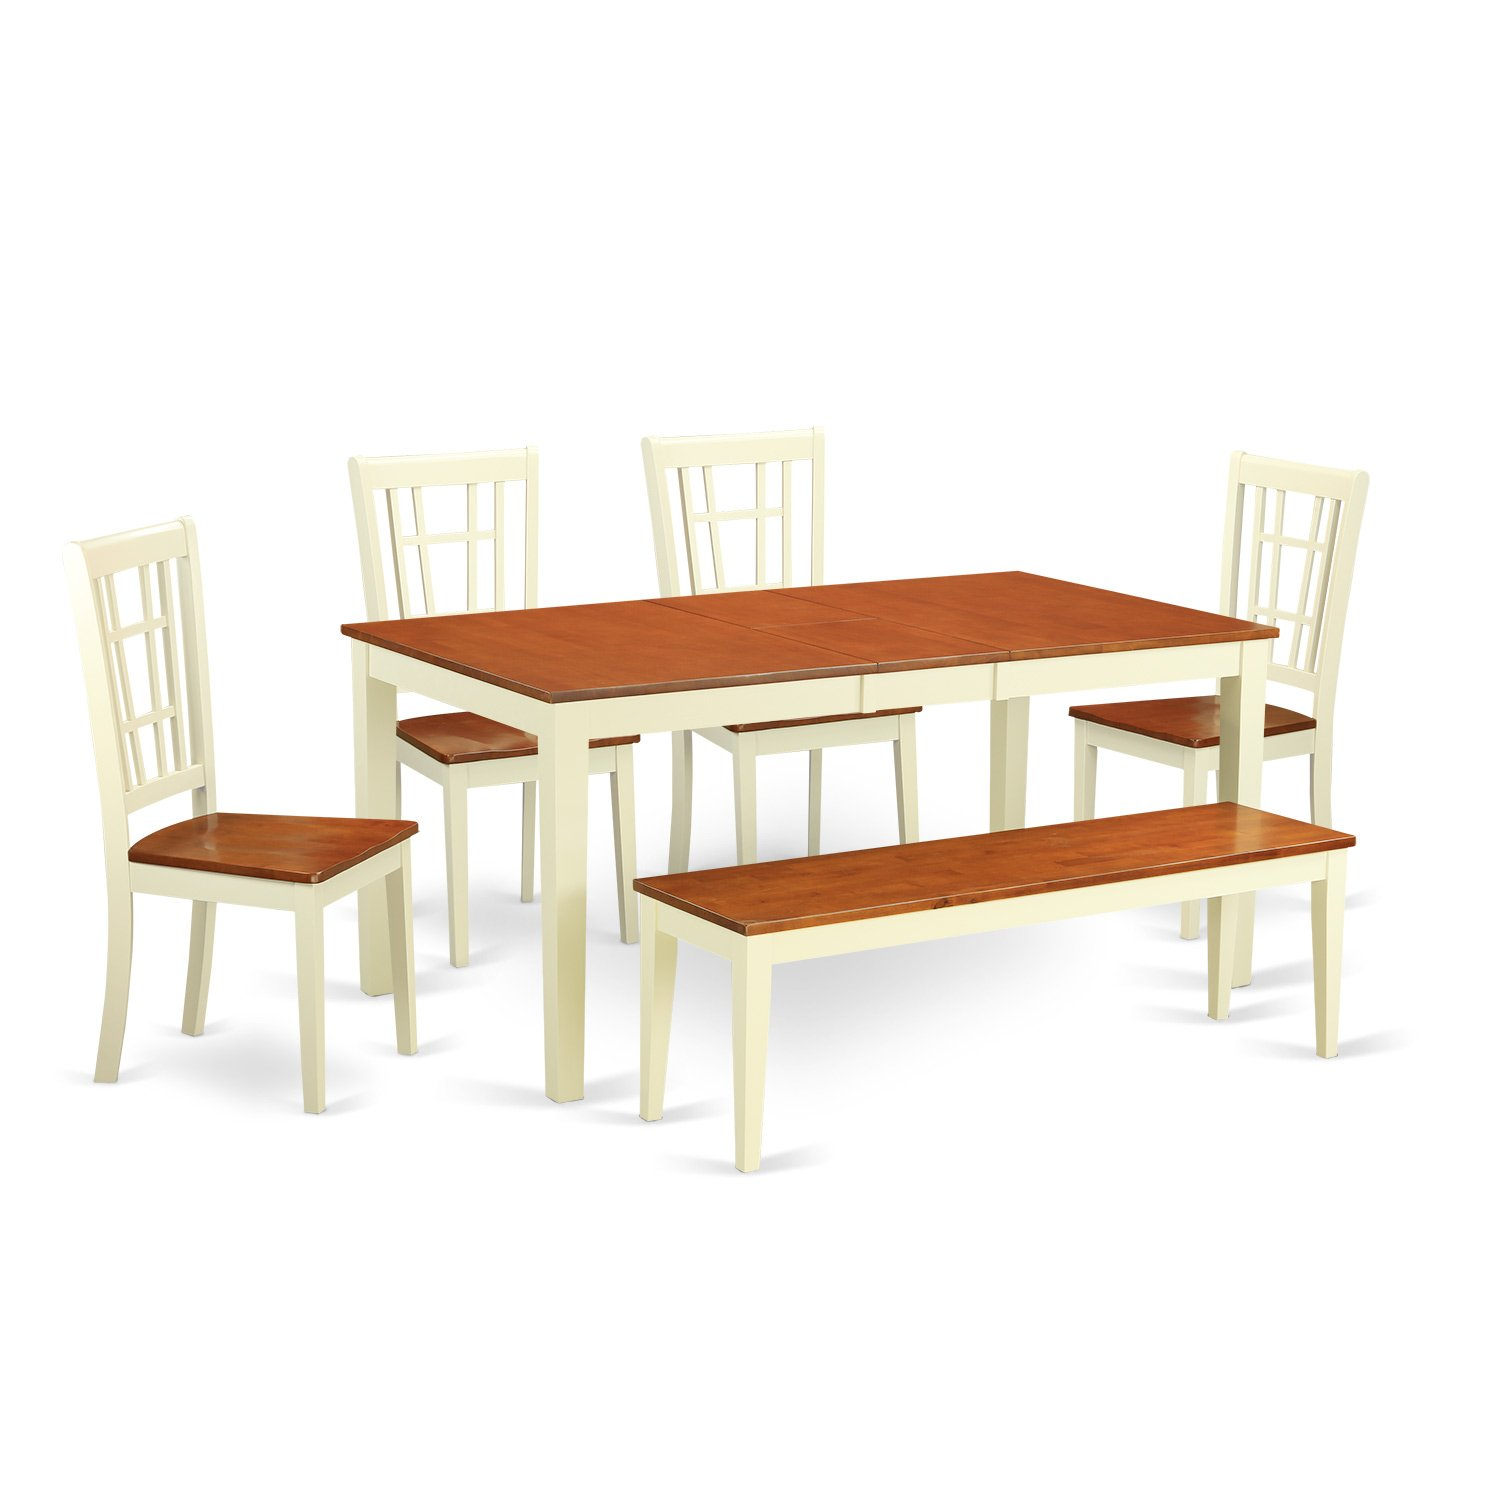 Beautiful small dining table price bd light of dining room - Dining room table prices ...